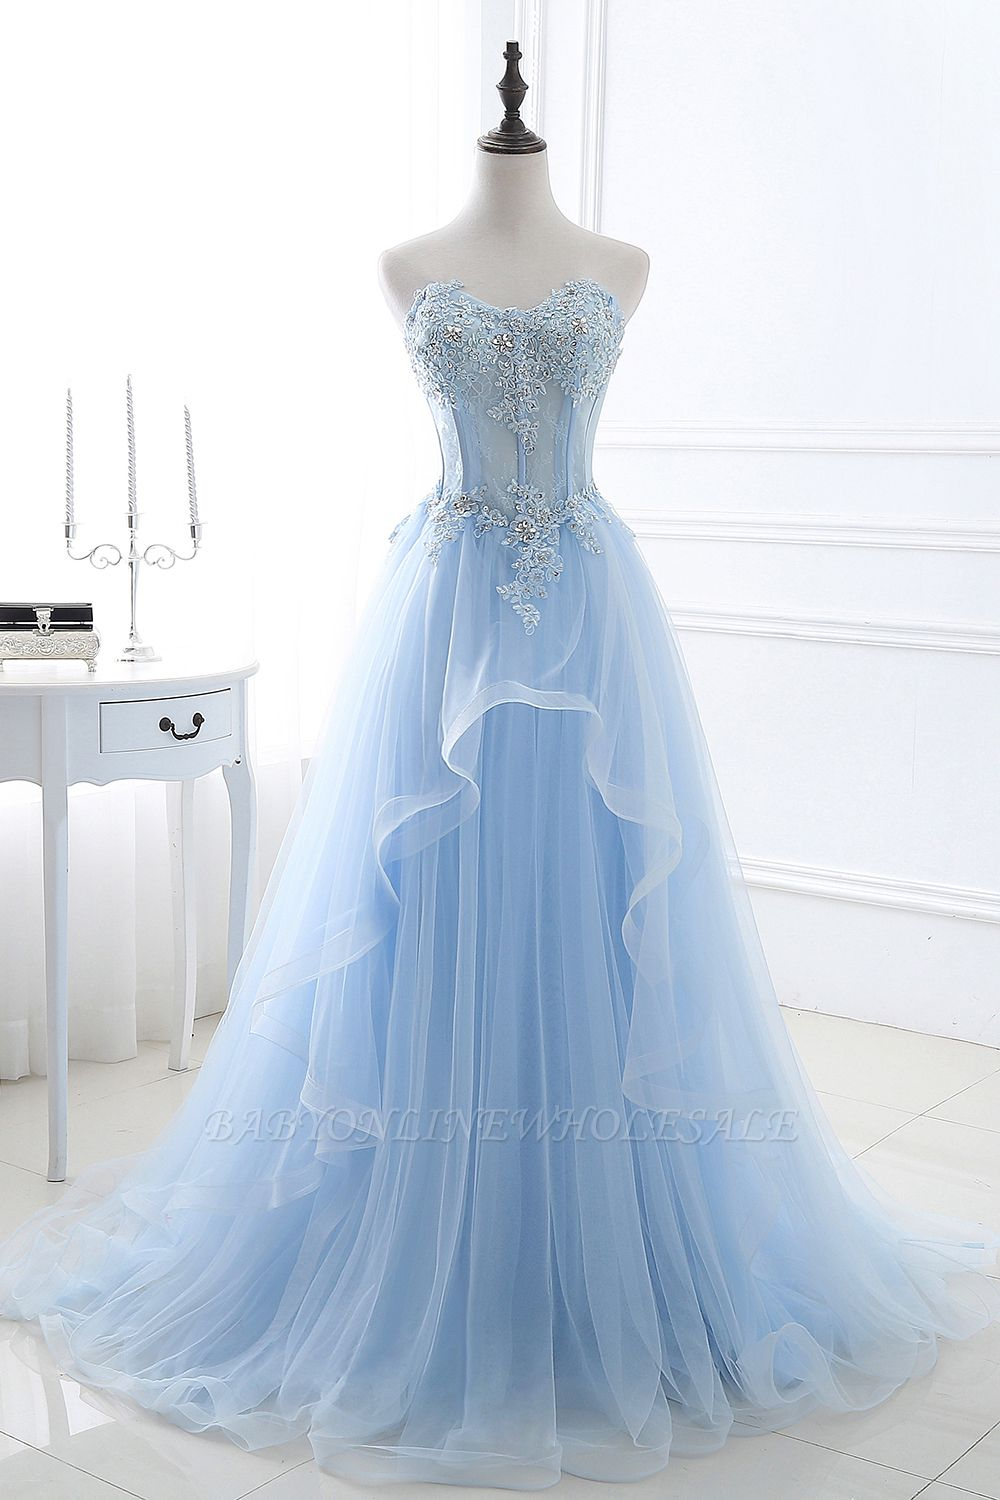 Paillettees Bleue Robe Promo Sweetheart Tulle